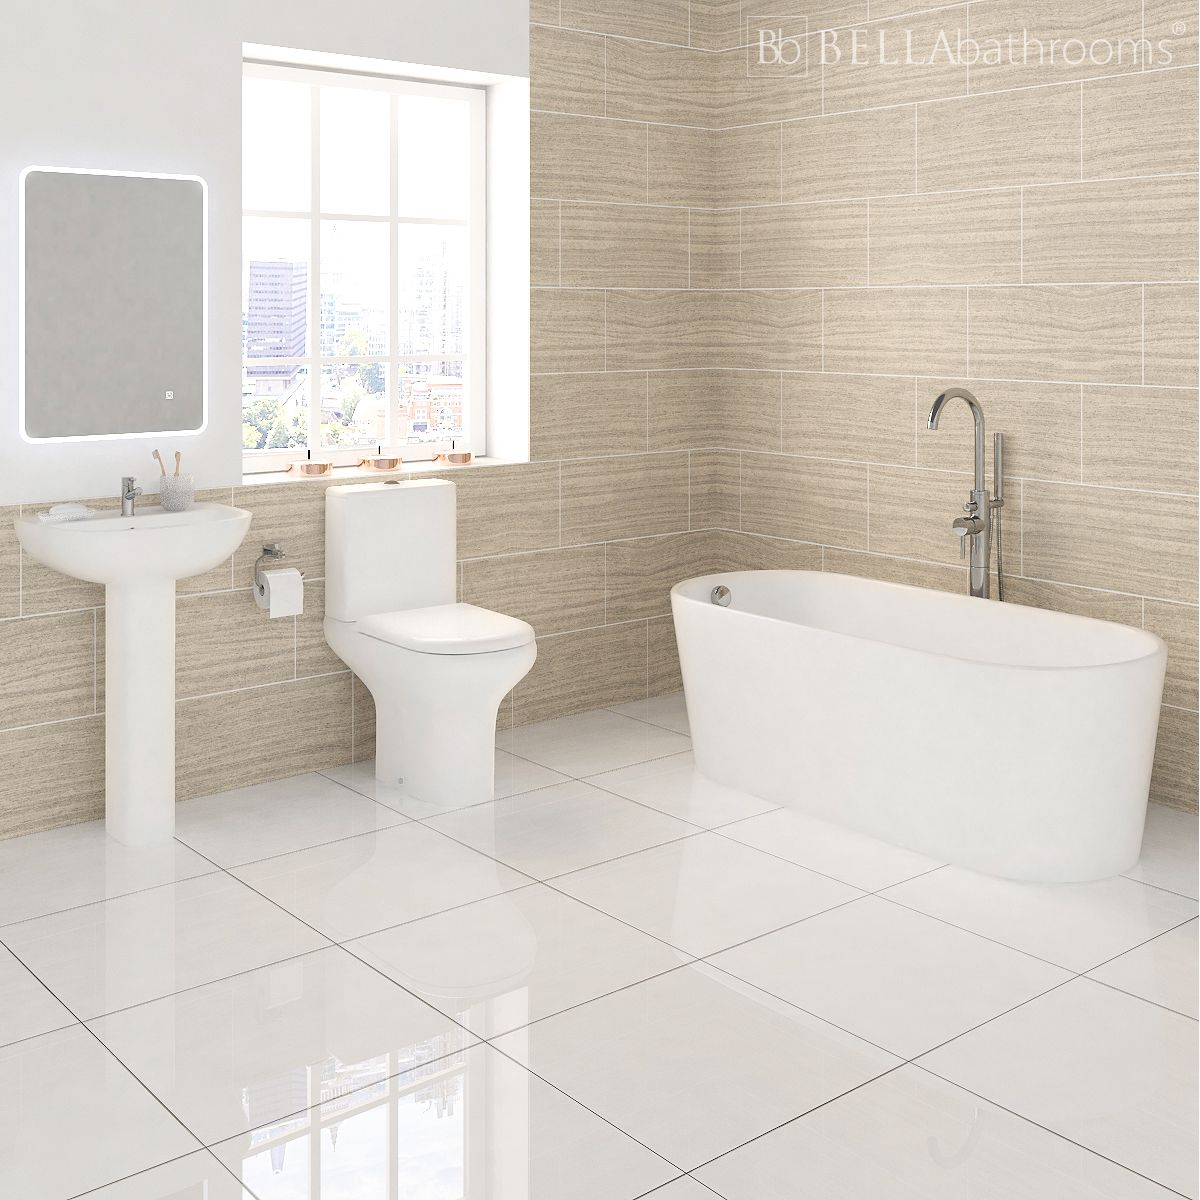 RAK Compact Gloss White Suite with Brearton Freestanding Bath